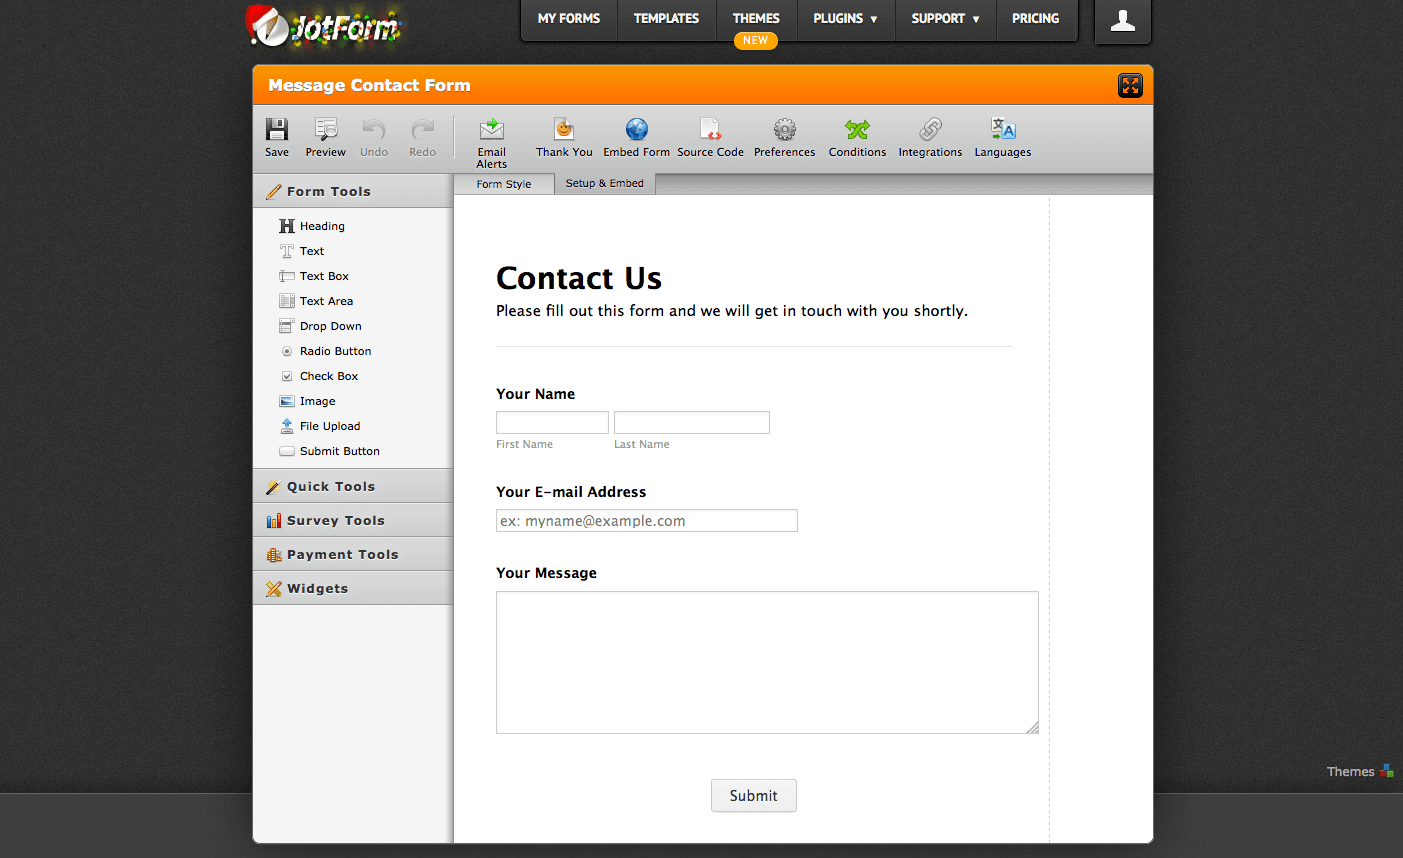 Web Form Builder Tool